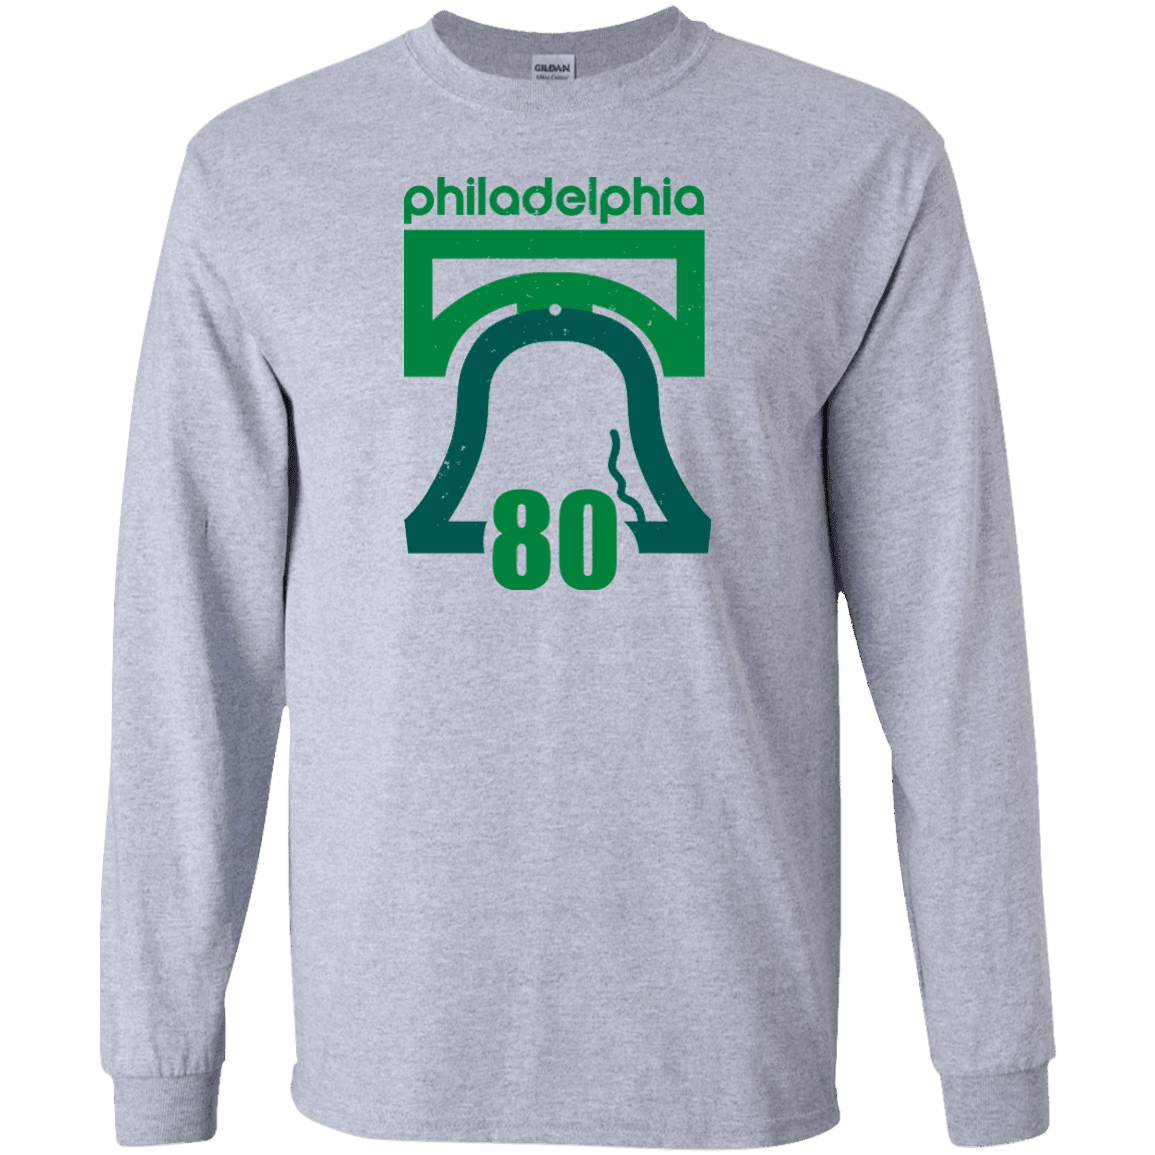 1980 Birds Inspired Retro Long Sleeve Ultra Cotton T-Shirt - Generation T